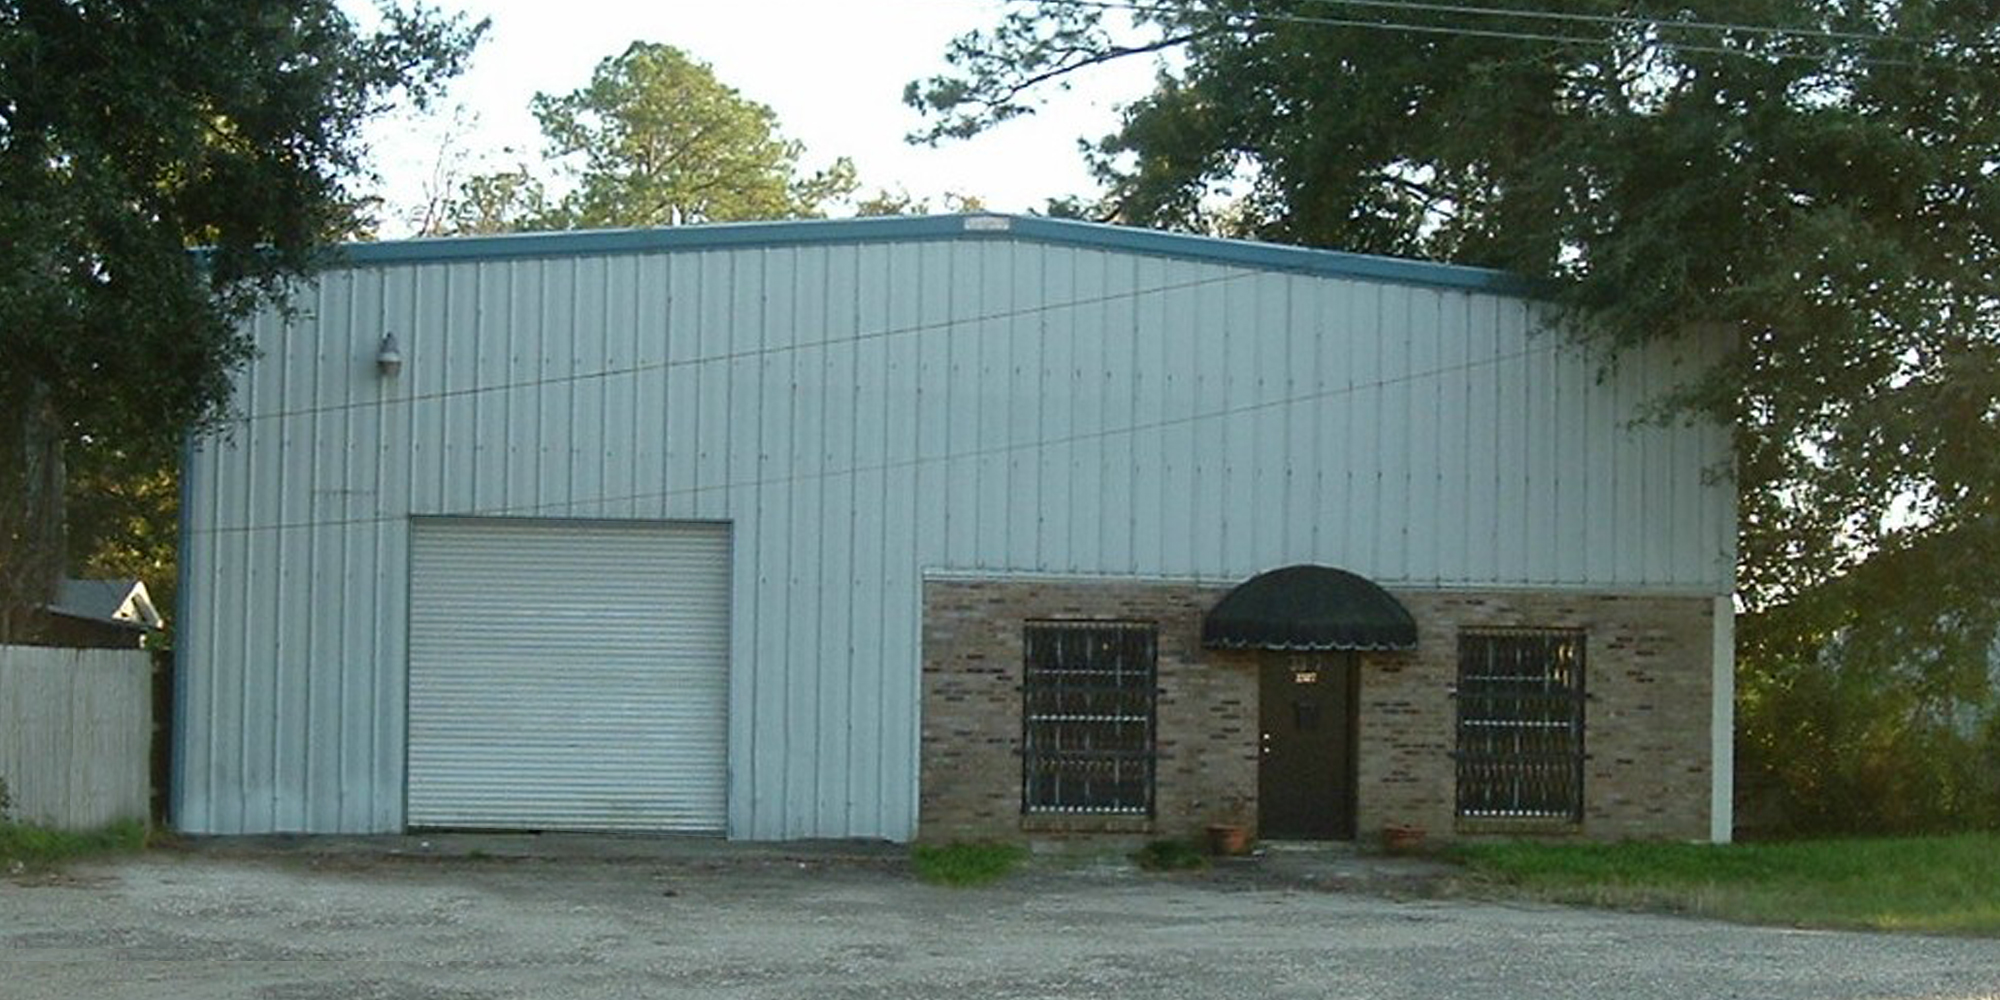 3307 Halls Mill Road - WAREHOUSEA 2,500± square foot office/warehouse located on the south side of Halls Mill Road, just west of Interstate 65.Lease Price: $900 Per Month